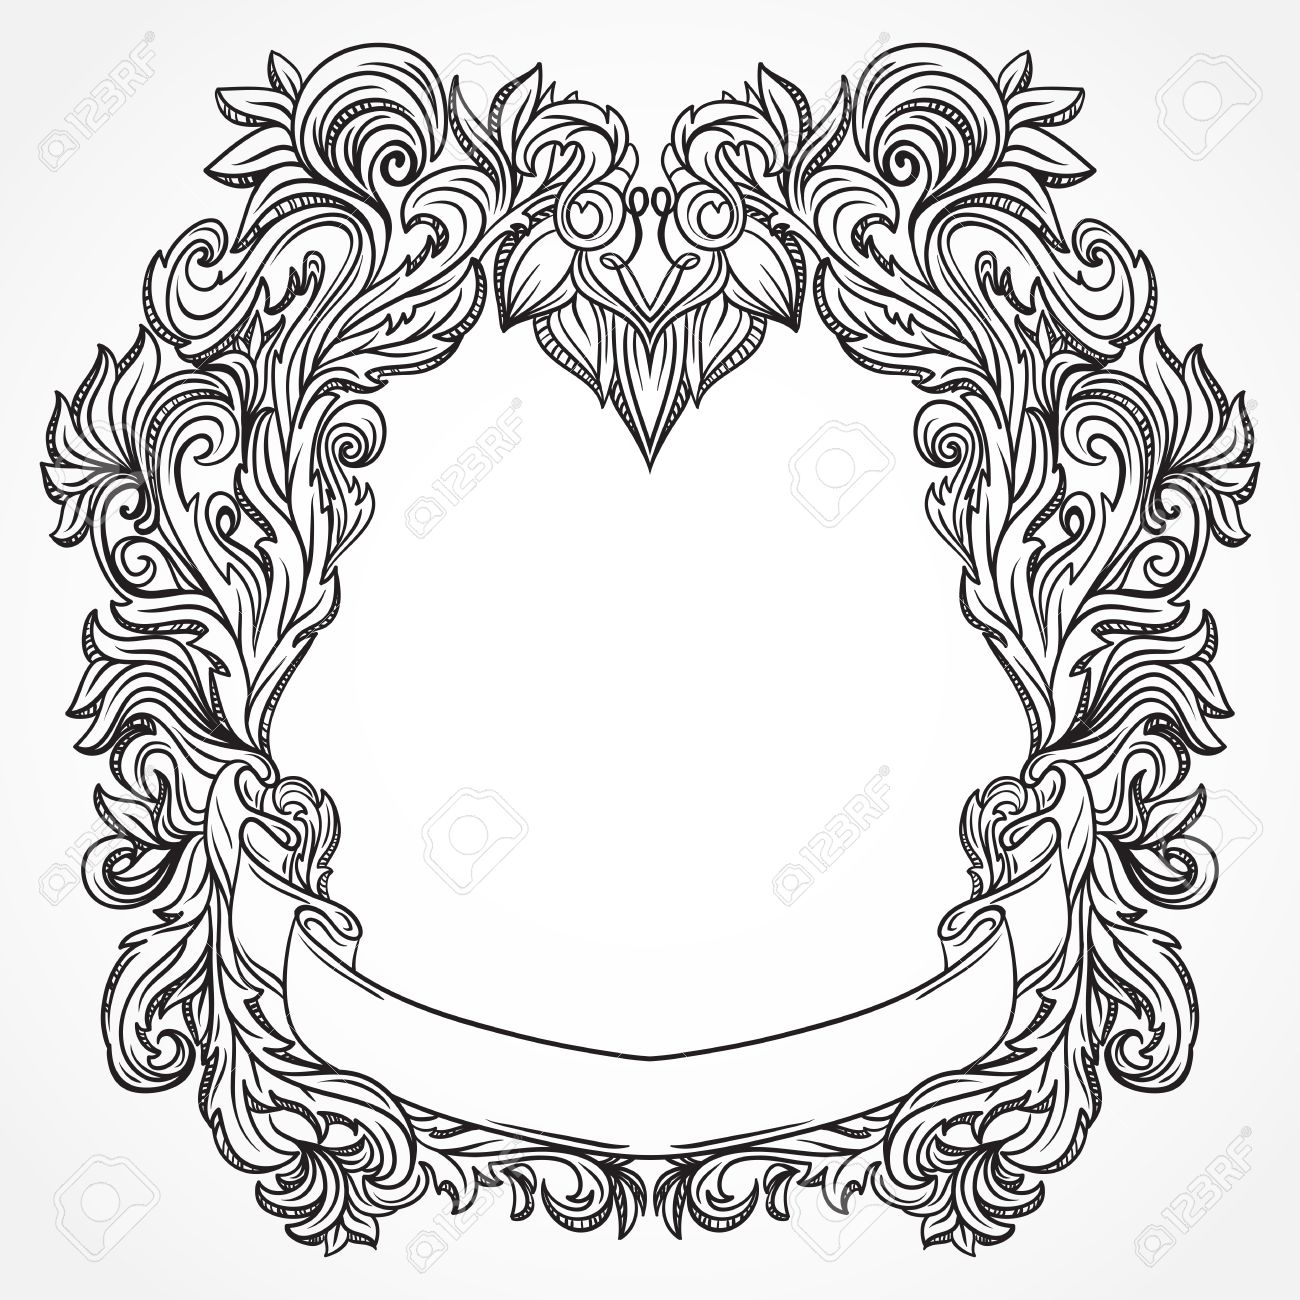 antique border frame engraving with retro ornament pattern vintage design decorative element in baroque style